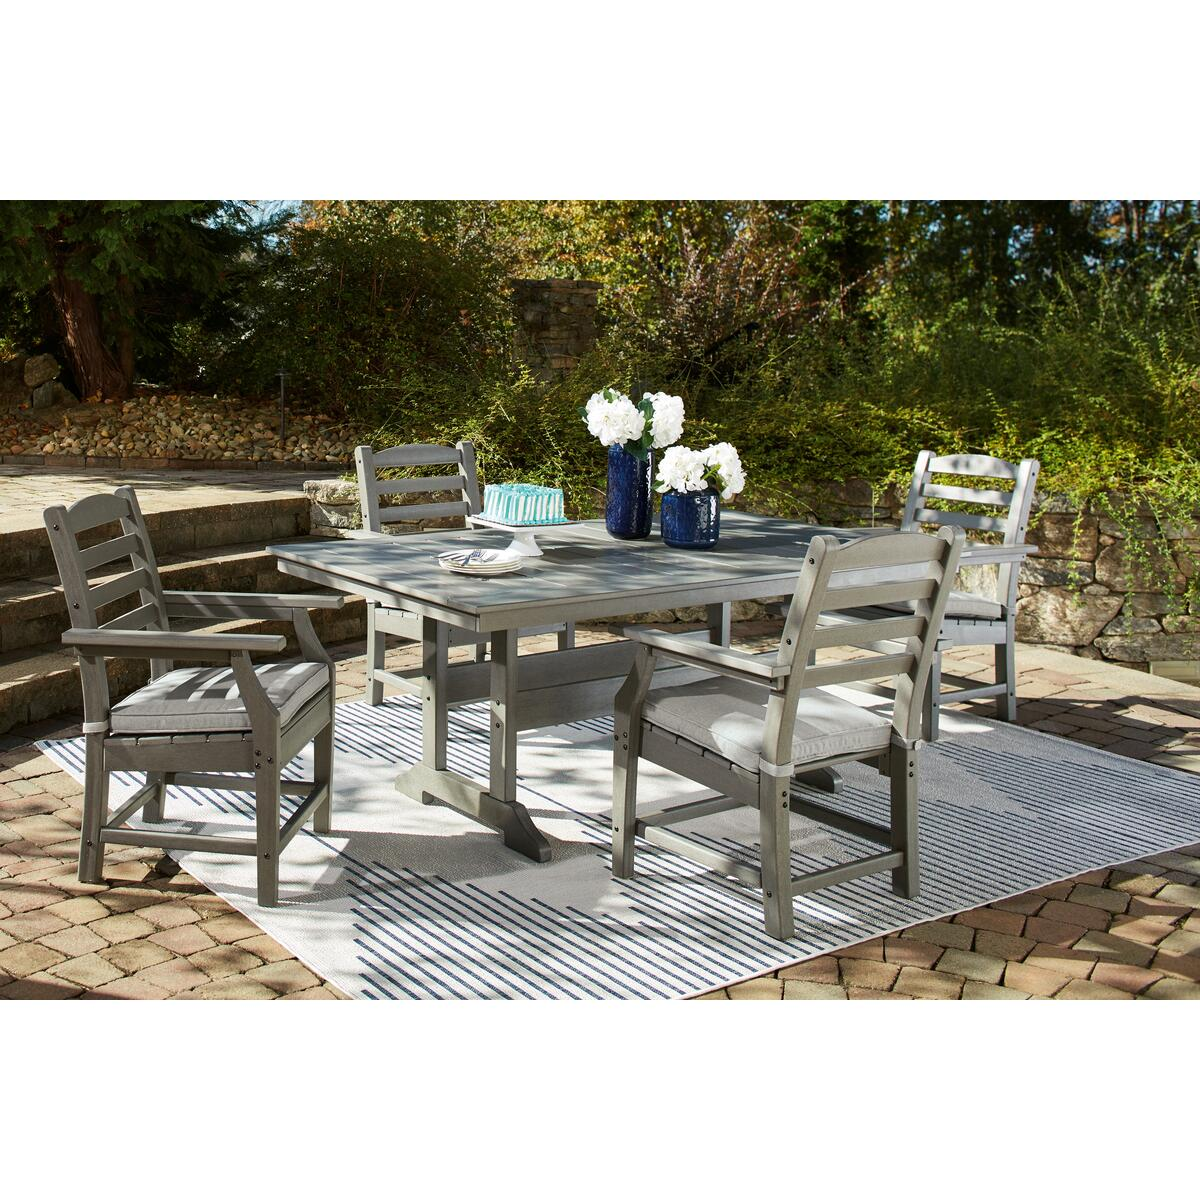 See Details - Outdoor Dining Table and 4 Chairs